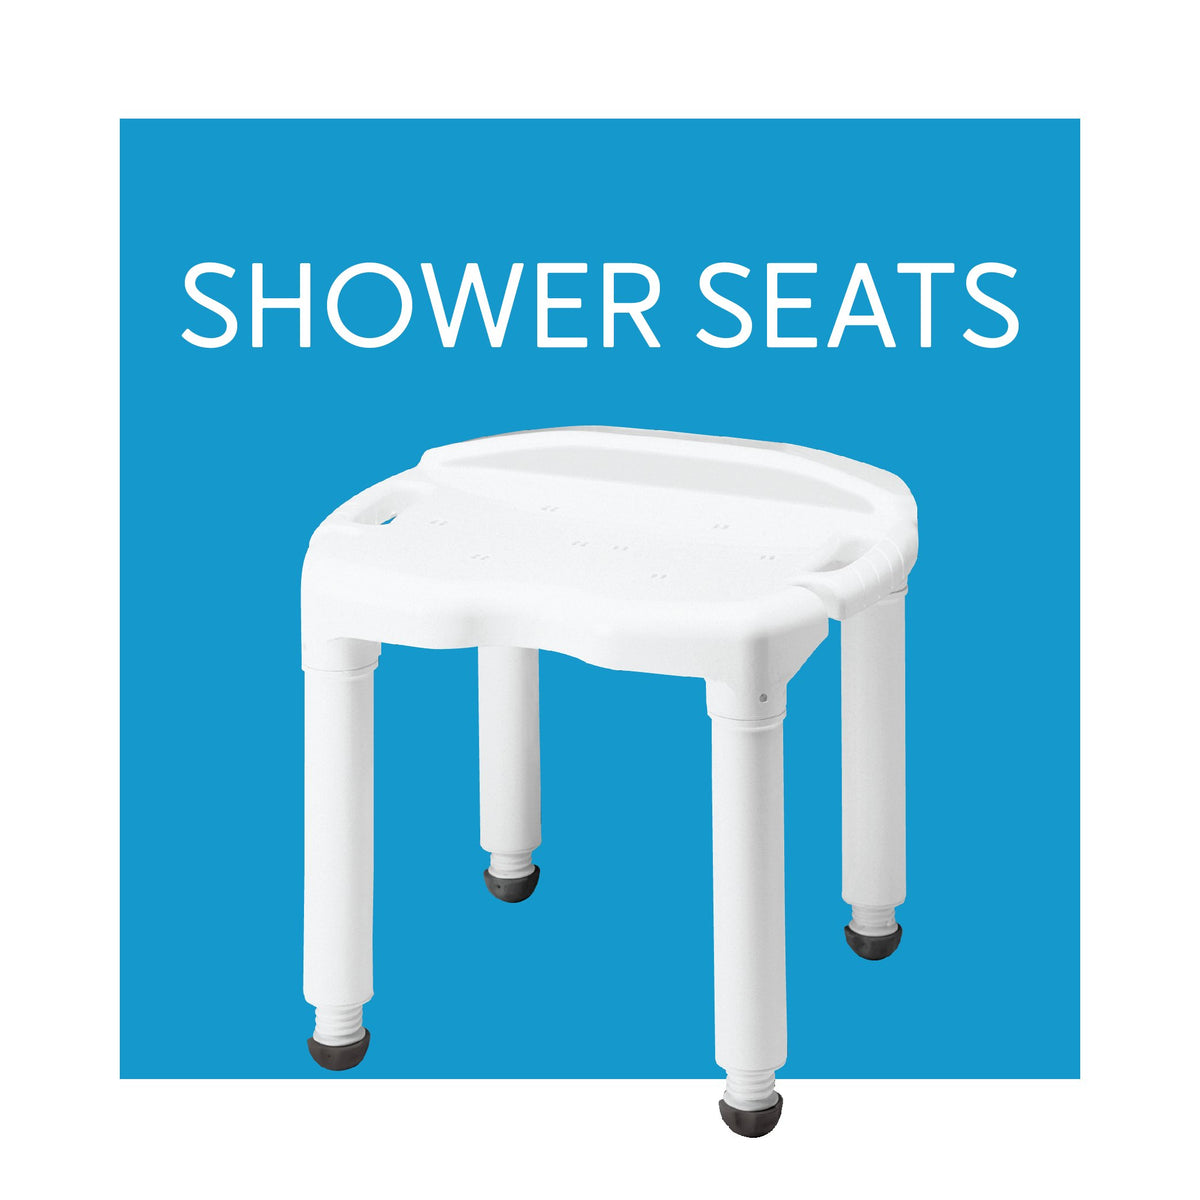 Marvelous Shower Seats And Benches Carex Health Brands Carex Com Caraccident5 Cool Chair Designs And Ideas Caraccident5Info